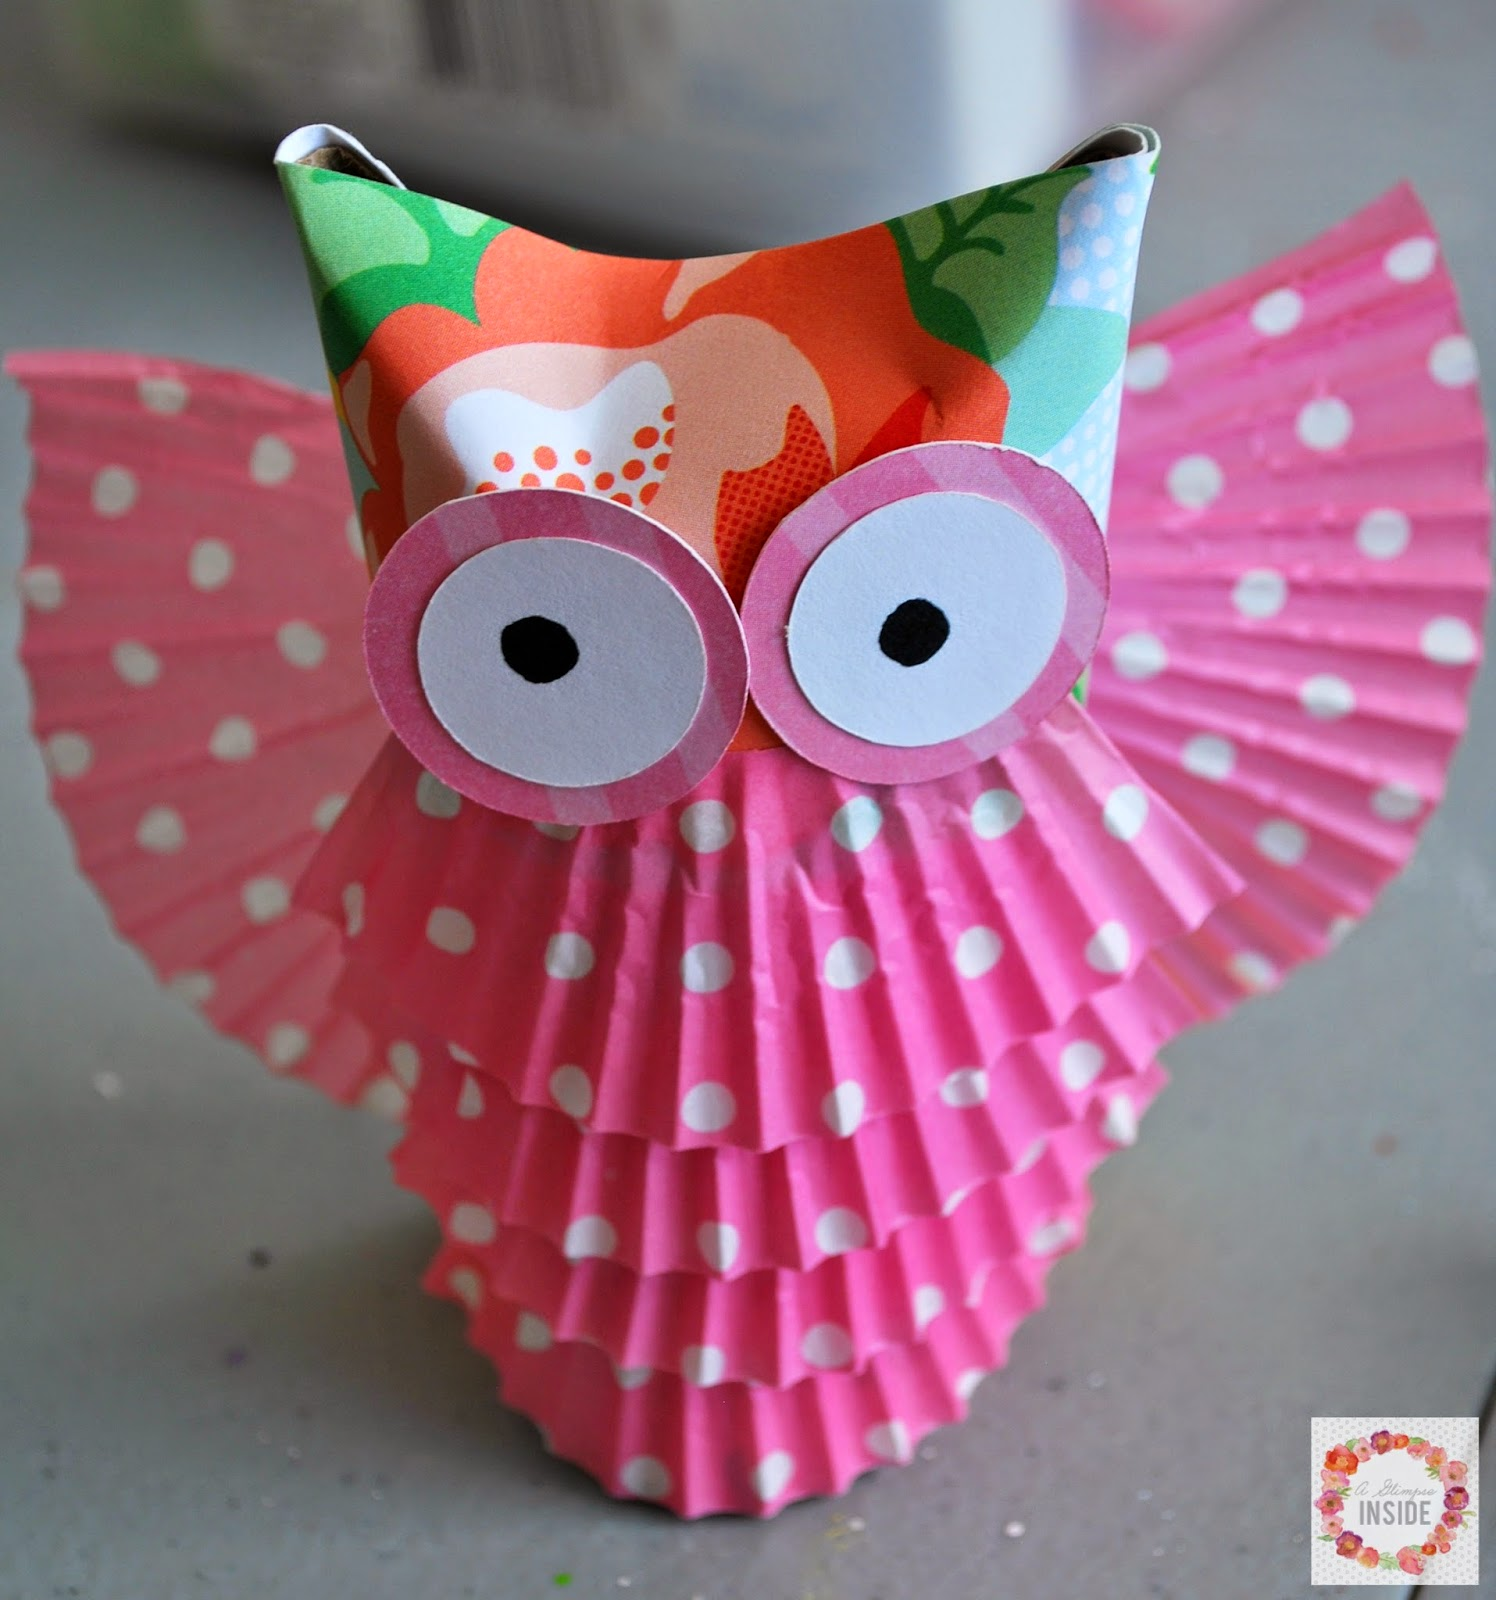 A glimpse inside toilet paper tube owls for Toilet paper tube owls